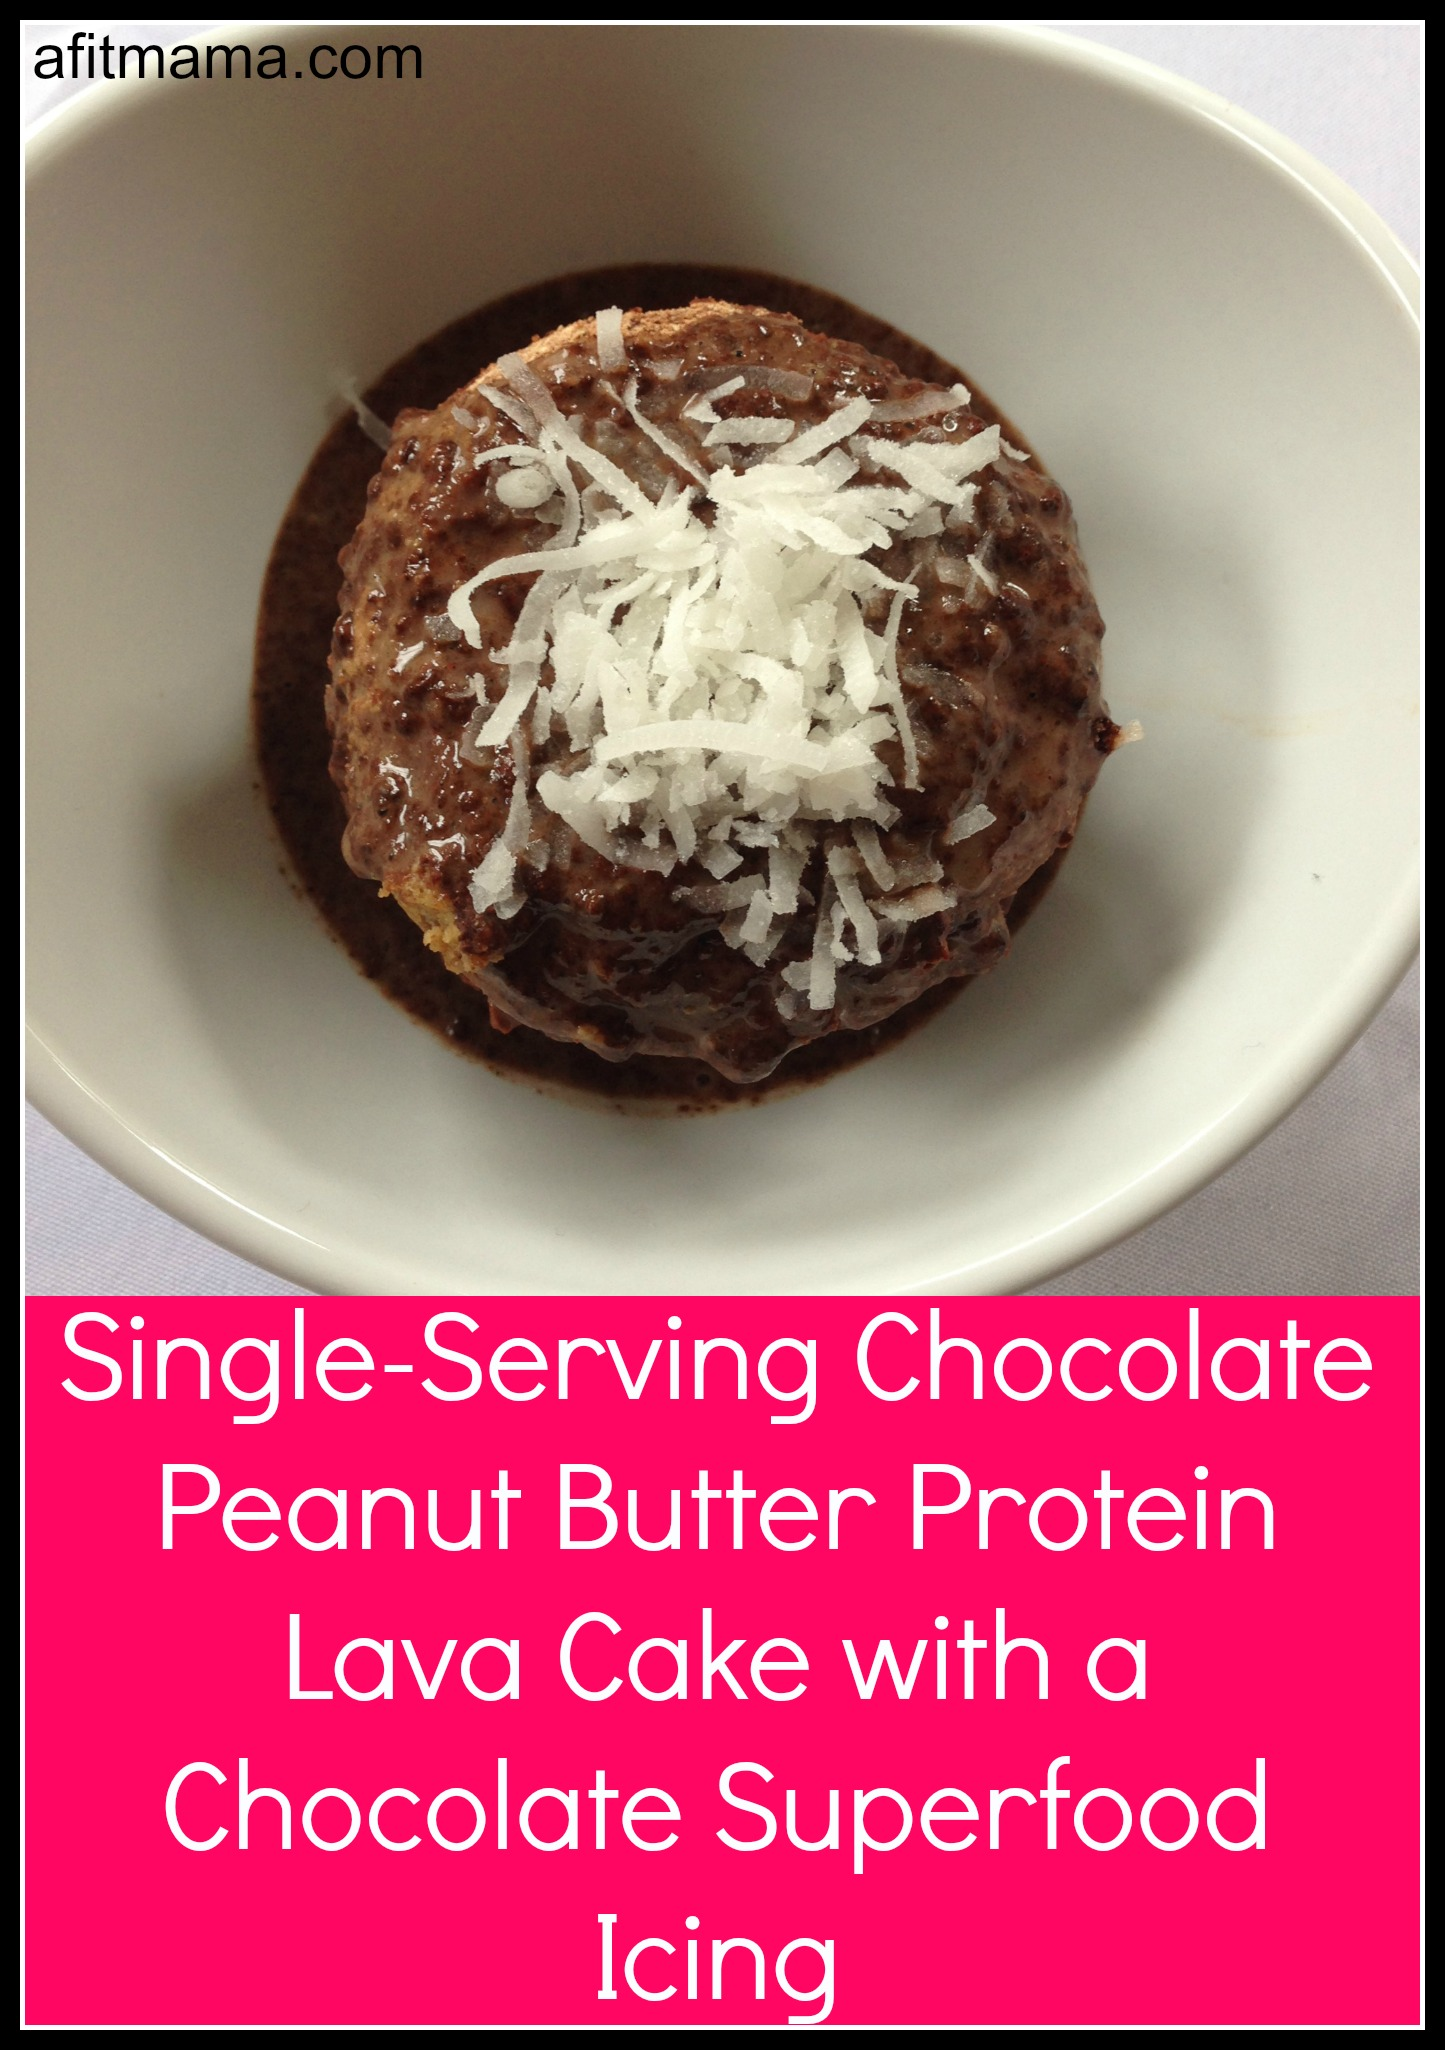 ... Protein Lava Cake with a Chocolate Superfood Icing - Fit with Rachel